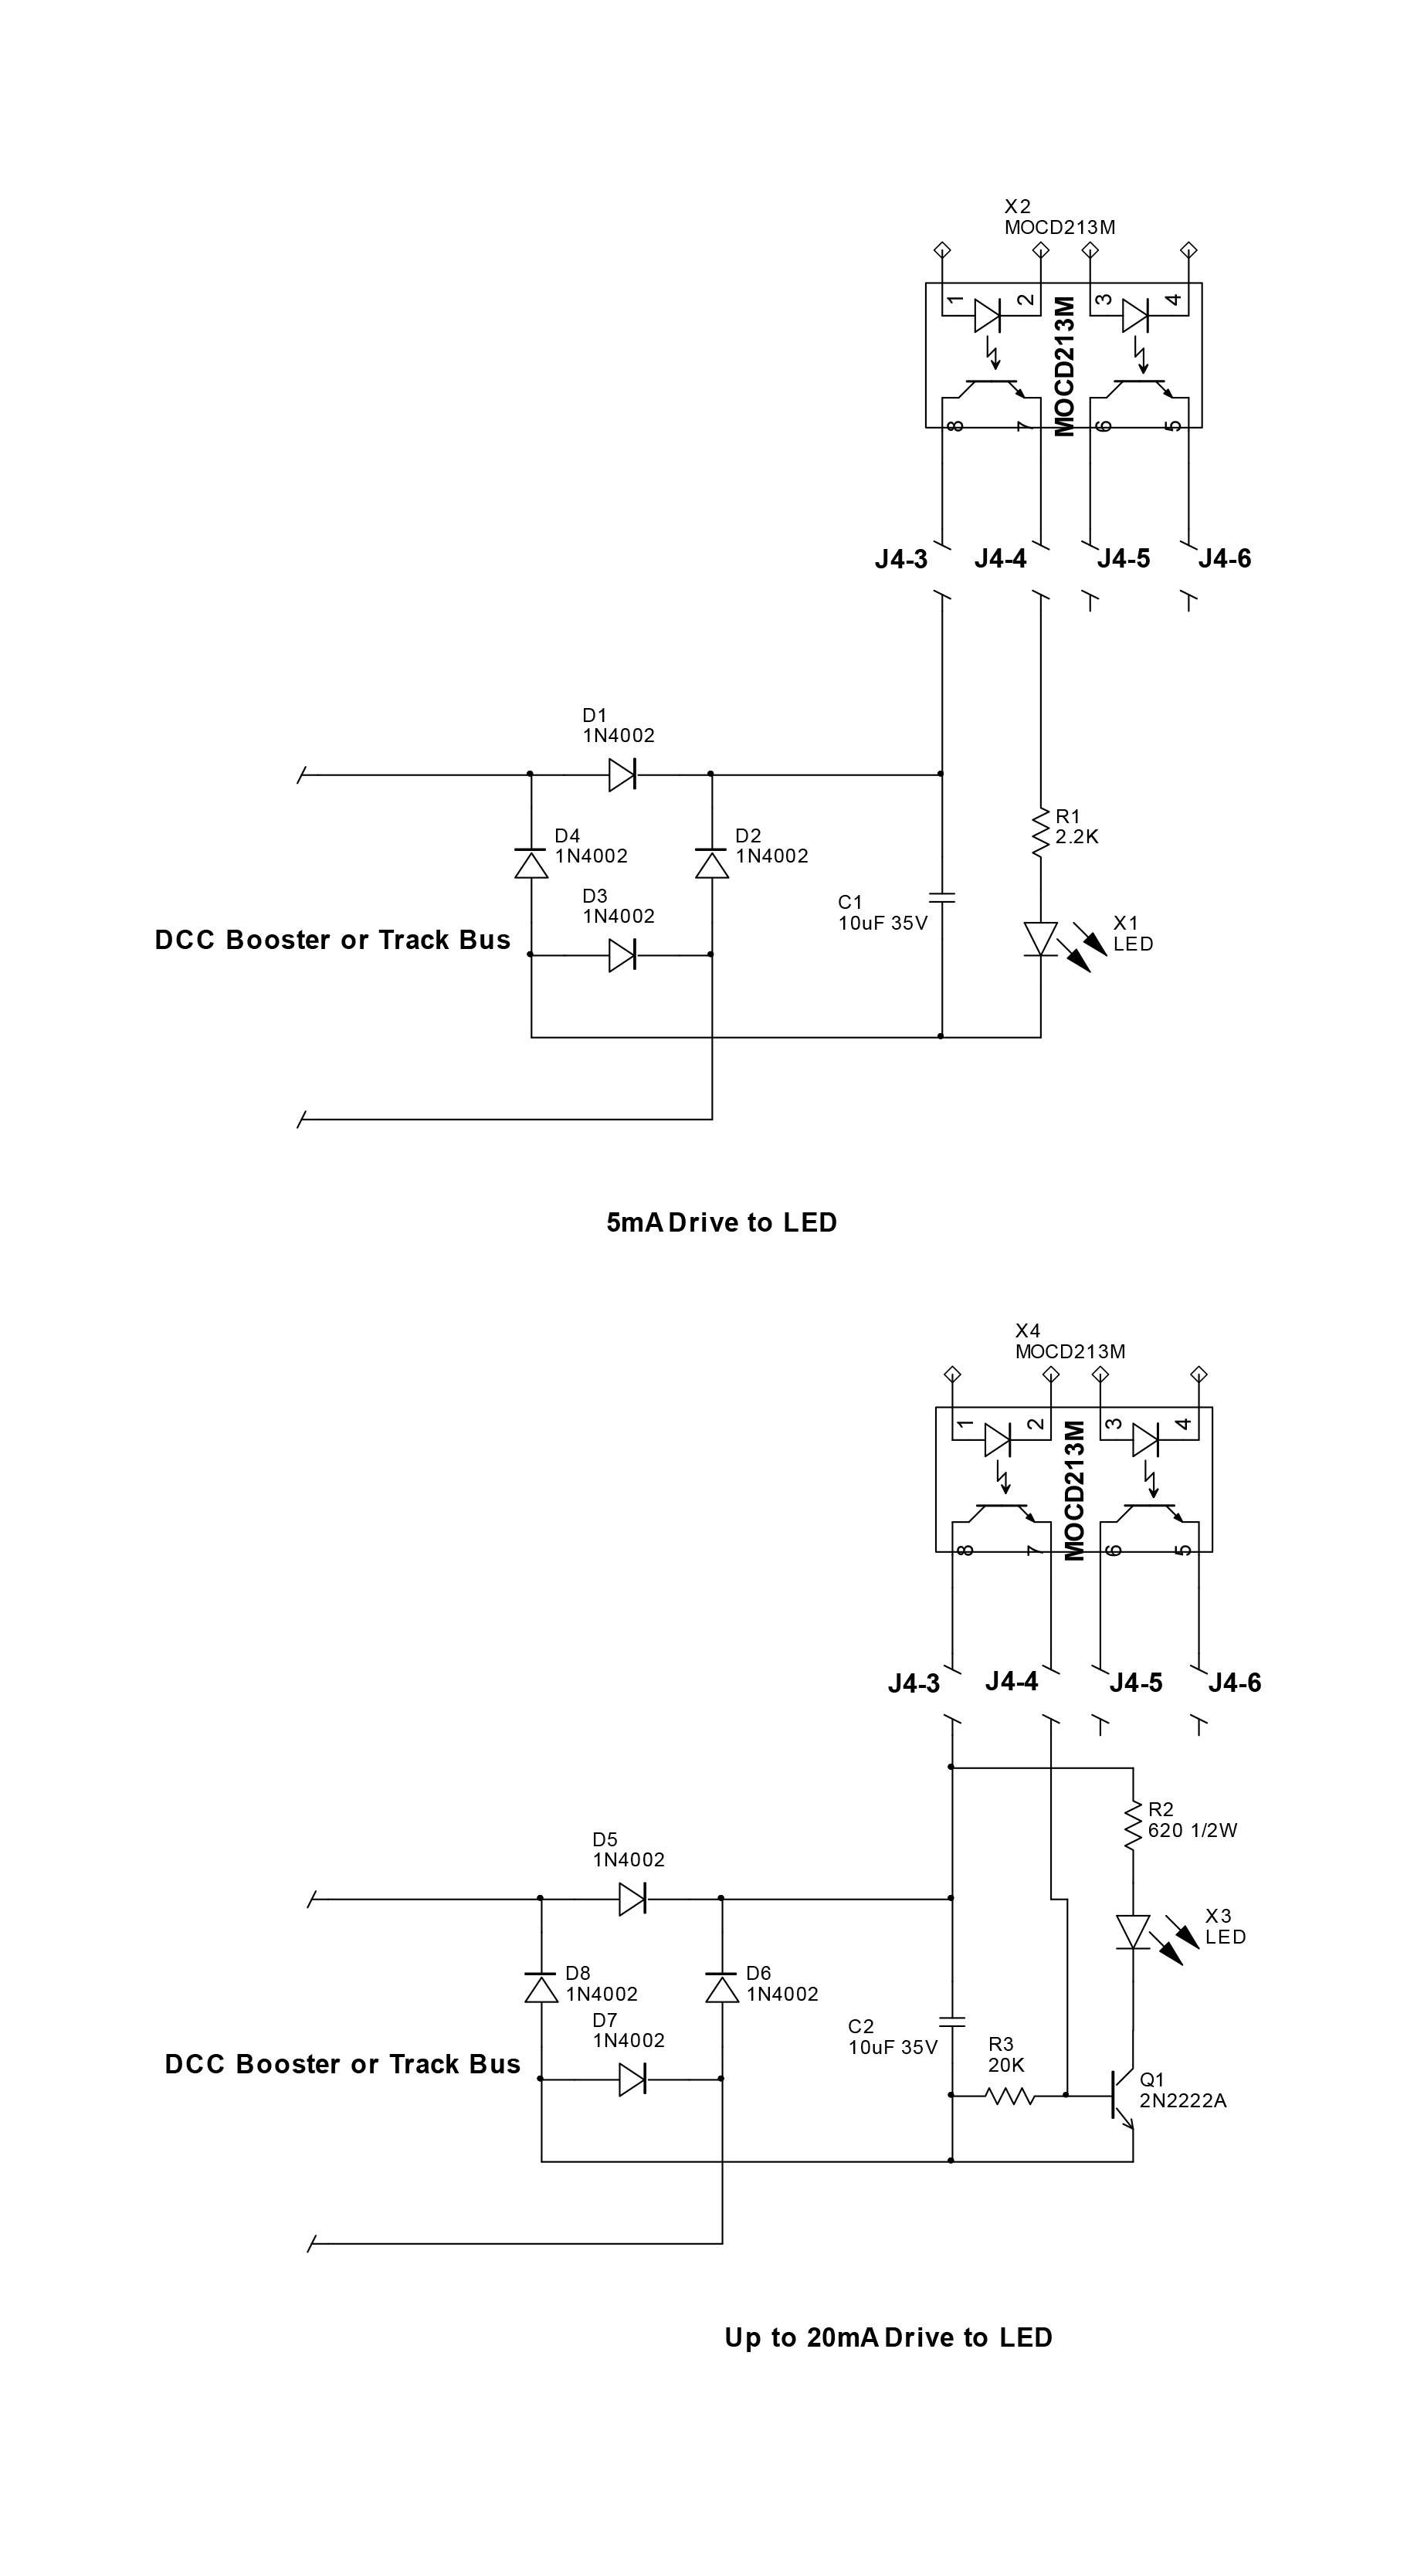 psx_remote_short_circuit_led_diagram